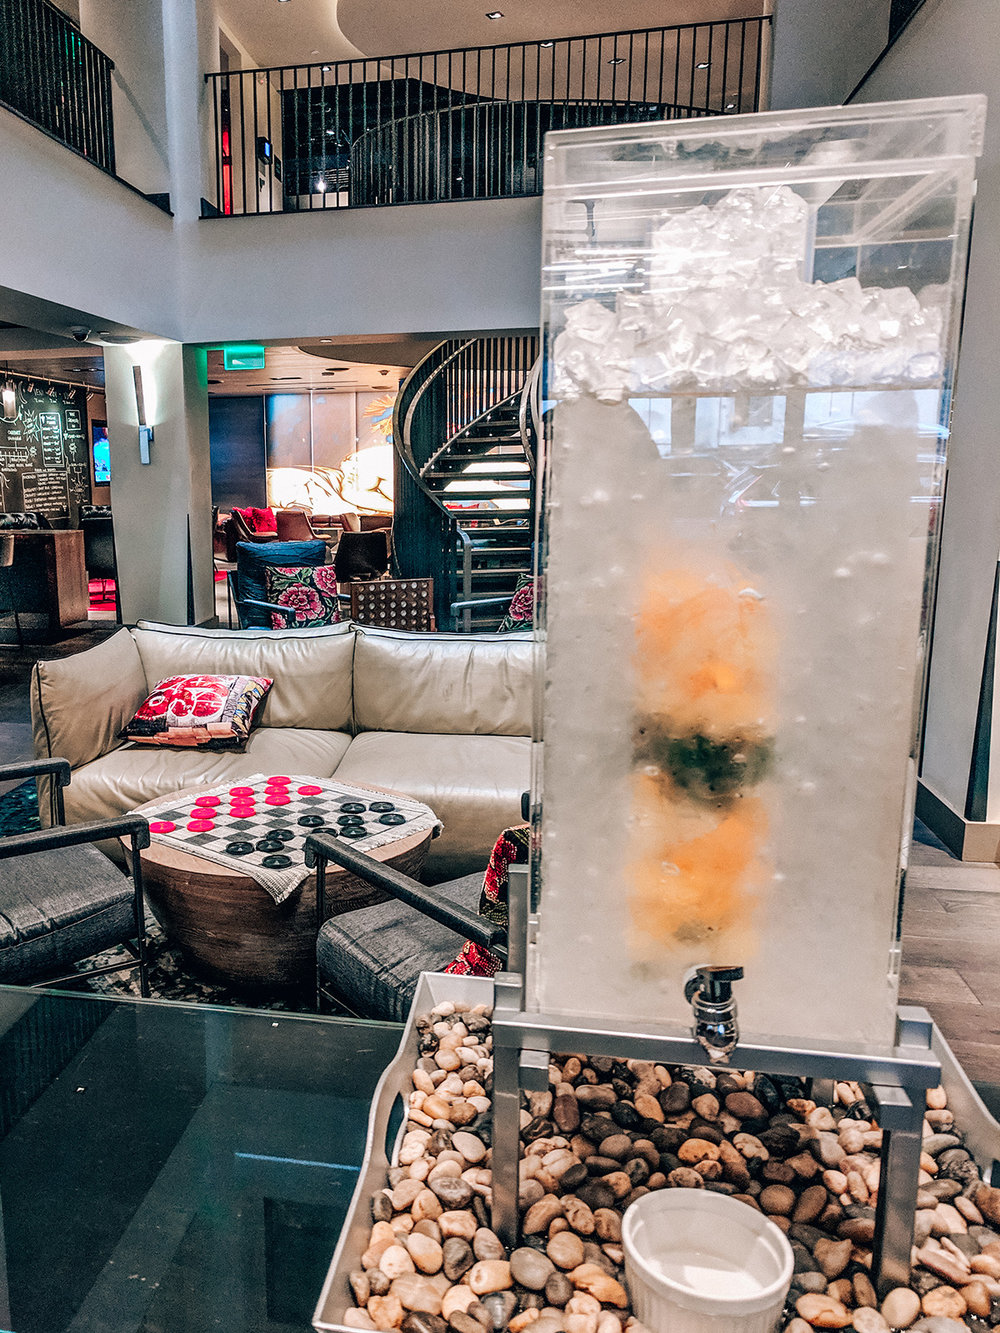 Hotel Vintage lobby infused water